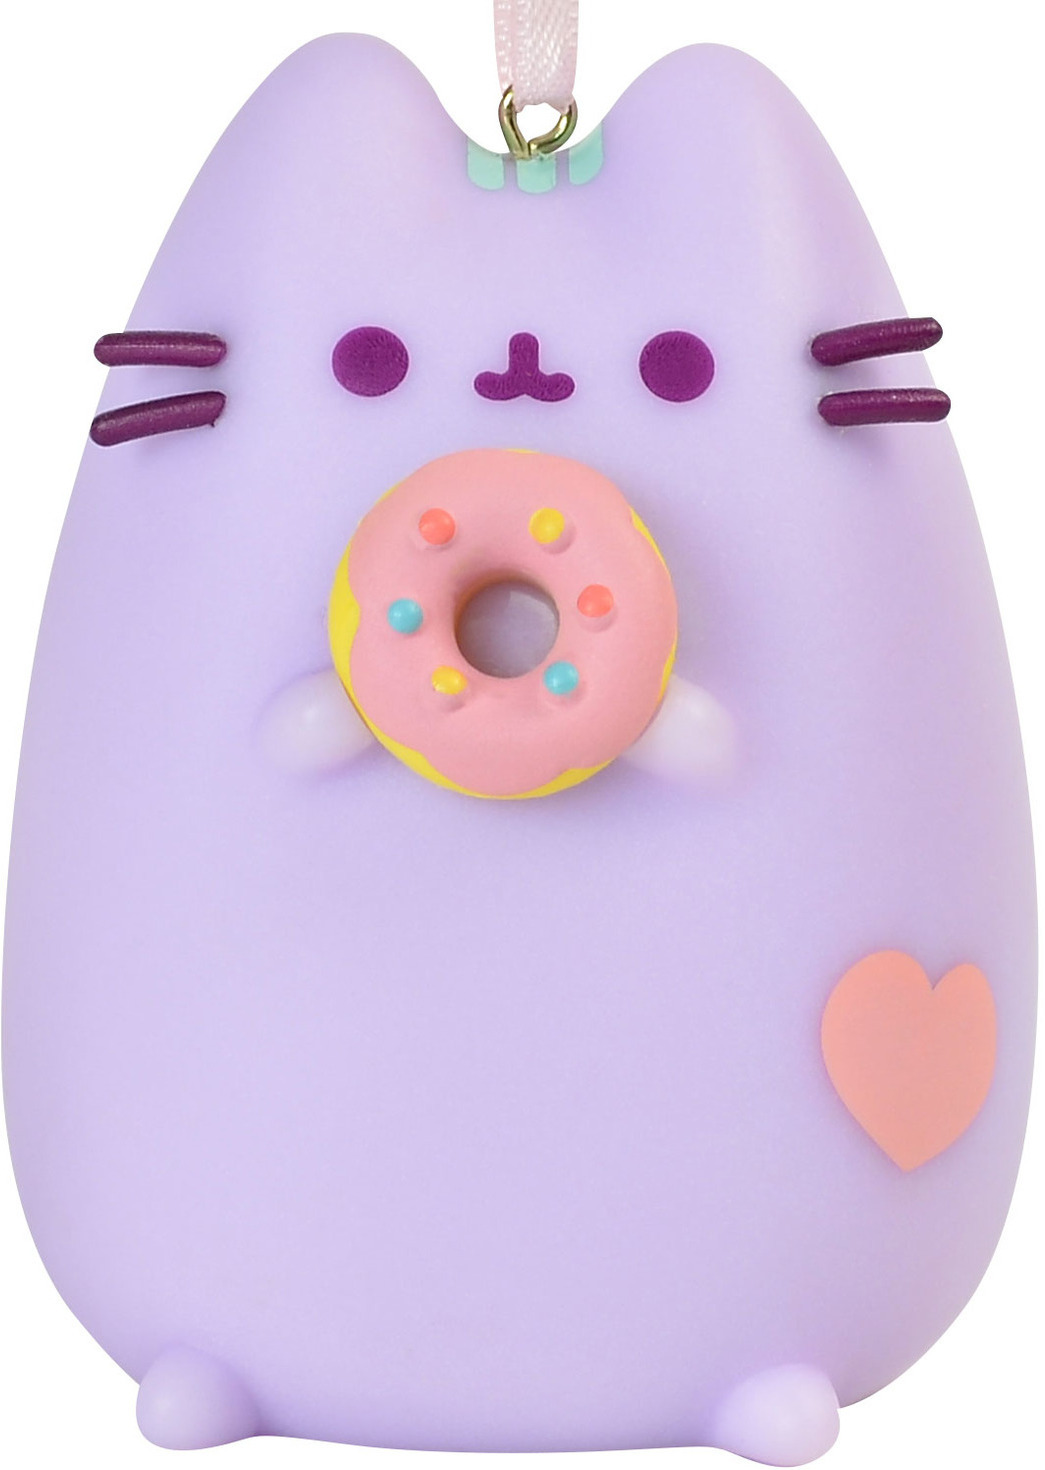 Pusheen by Department 56 4060367 Pastel Purple Pusheen PVC